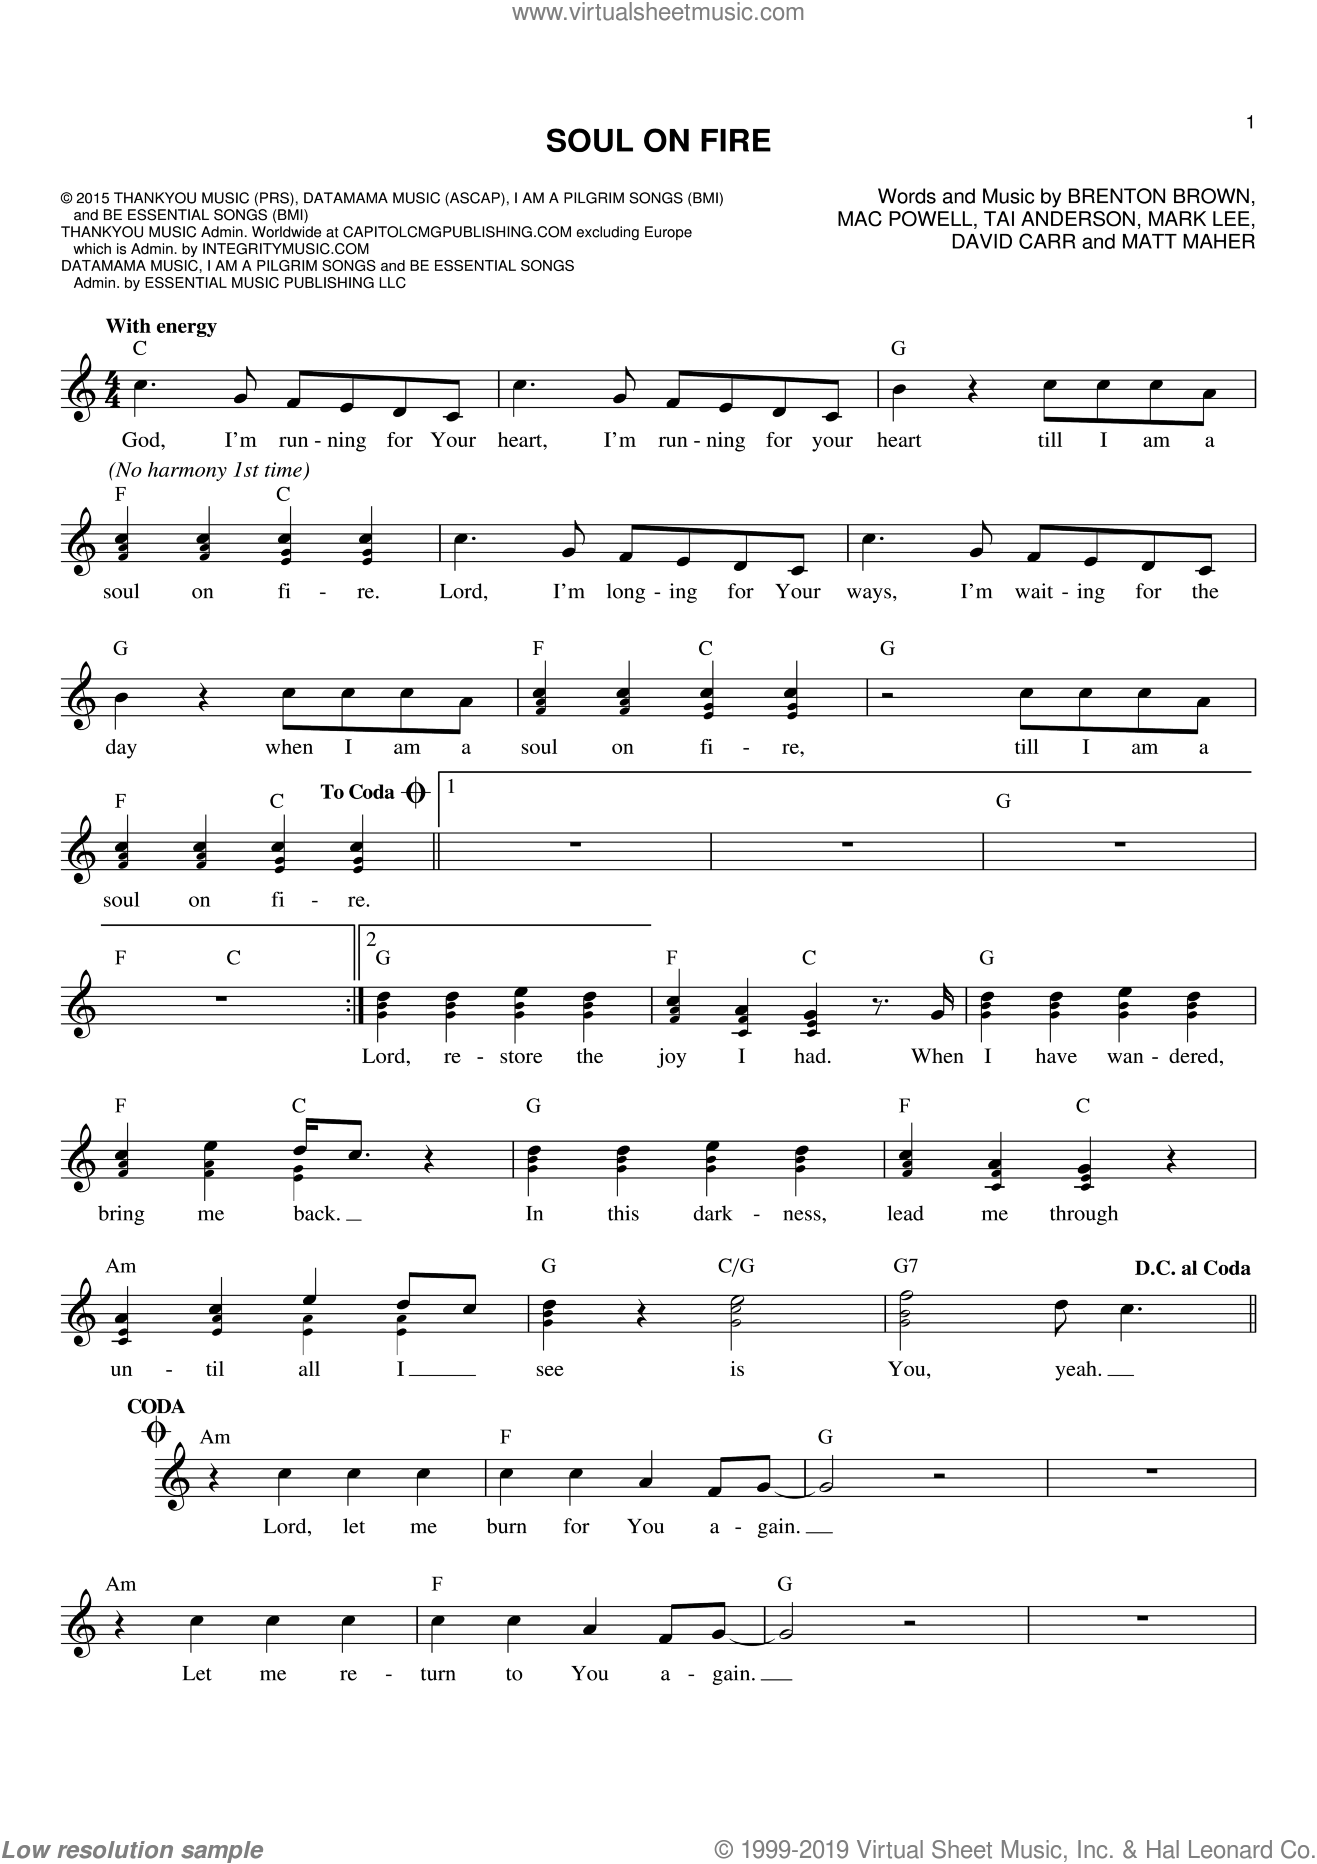 Soul On Fire sheet music for voice and other instruments (fake book) by Third Day, Brenton Brown, David Carr, Mac Powell, Mark Lee, Matt Maher and Tai Anderson, intermediate skill level